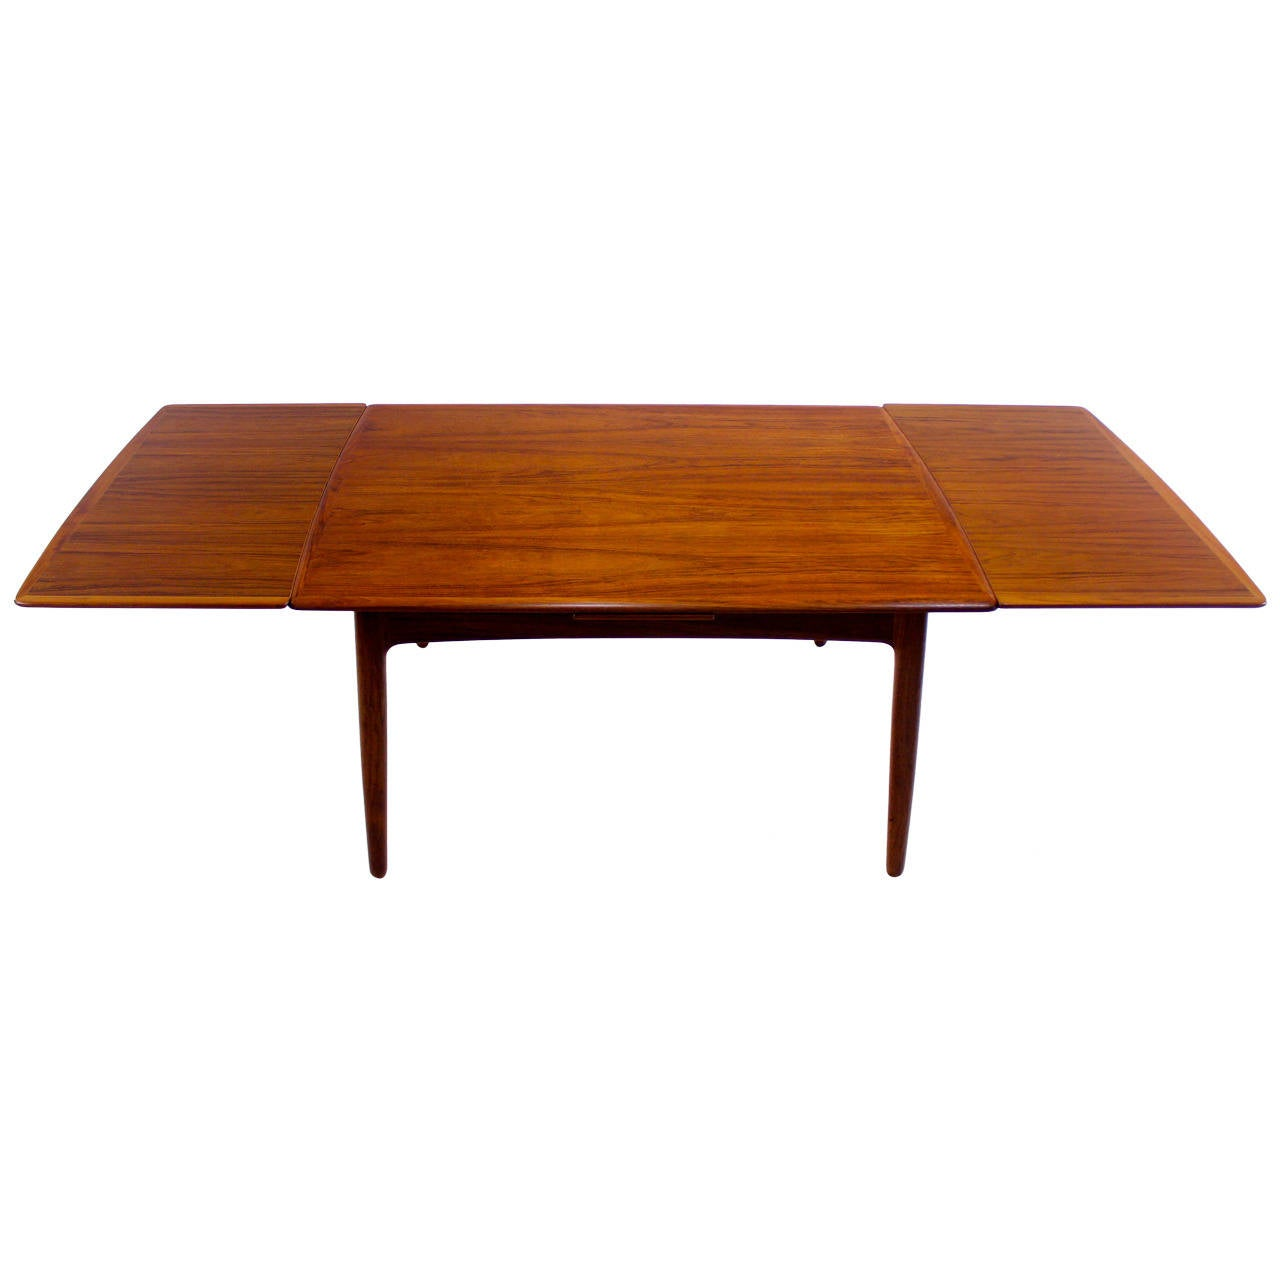 extra deep danish modern draw leaf dining table designed